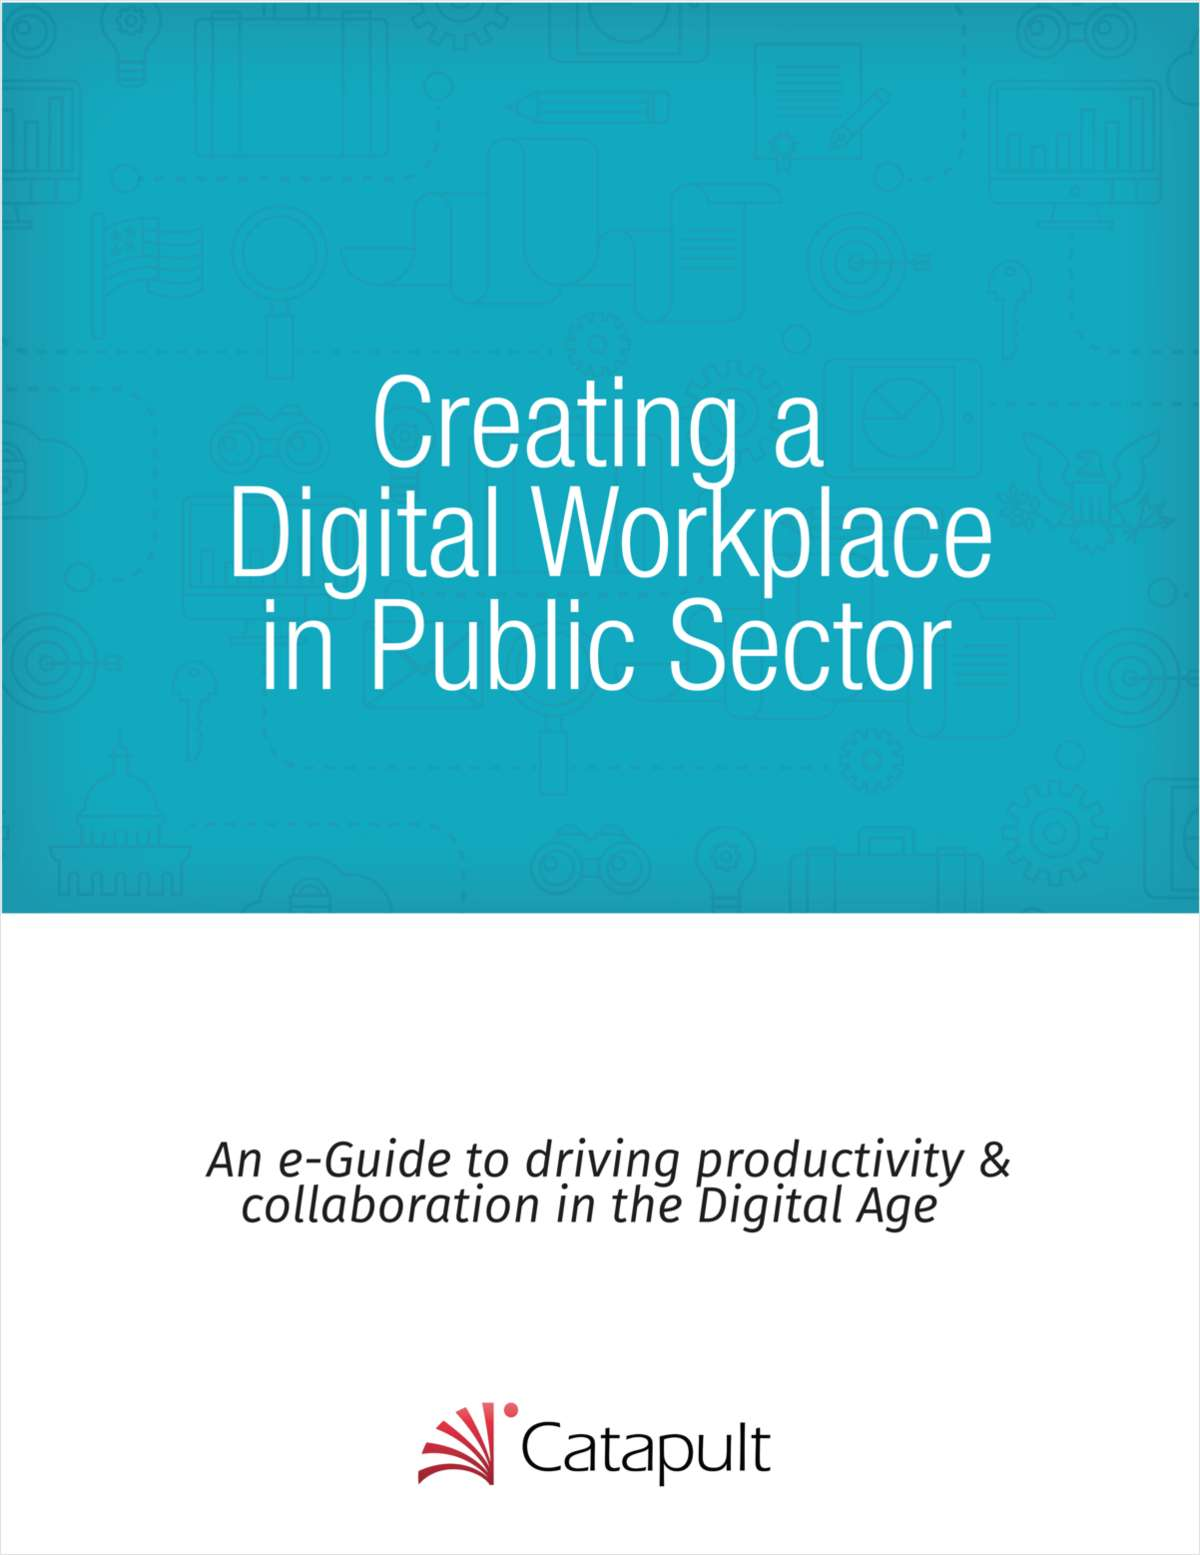 Creating a Digital Workplace in Public Sector